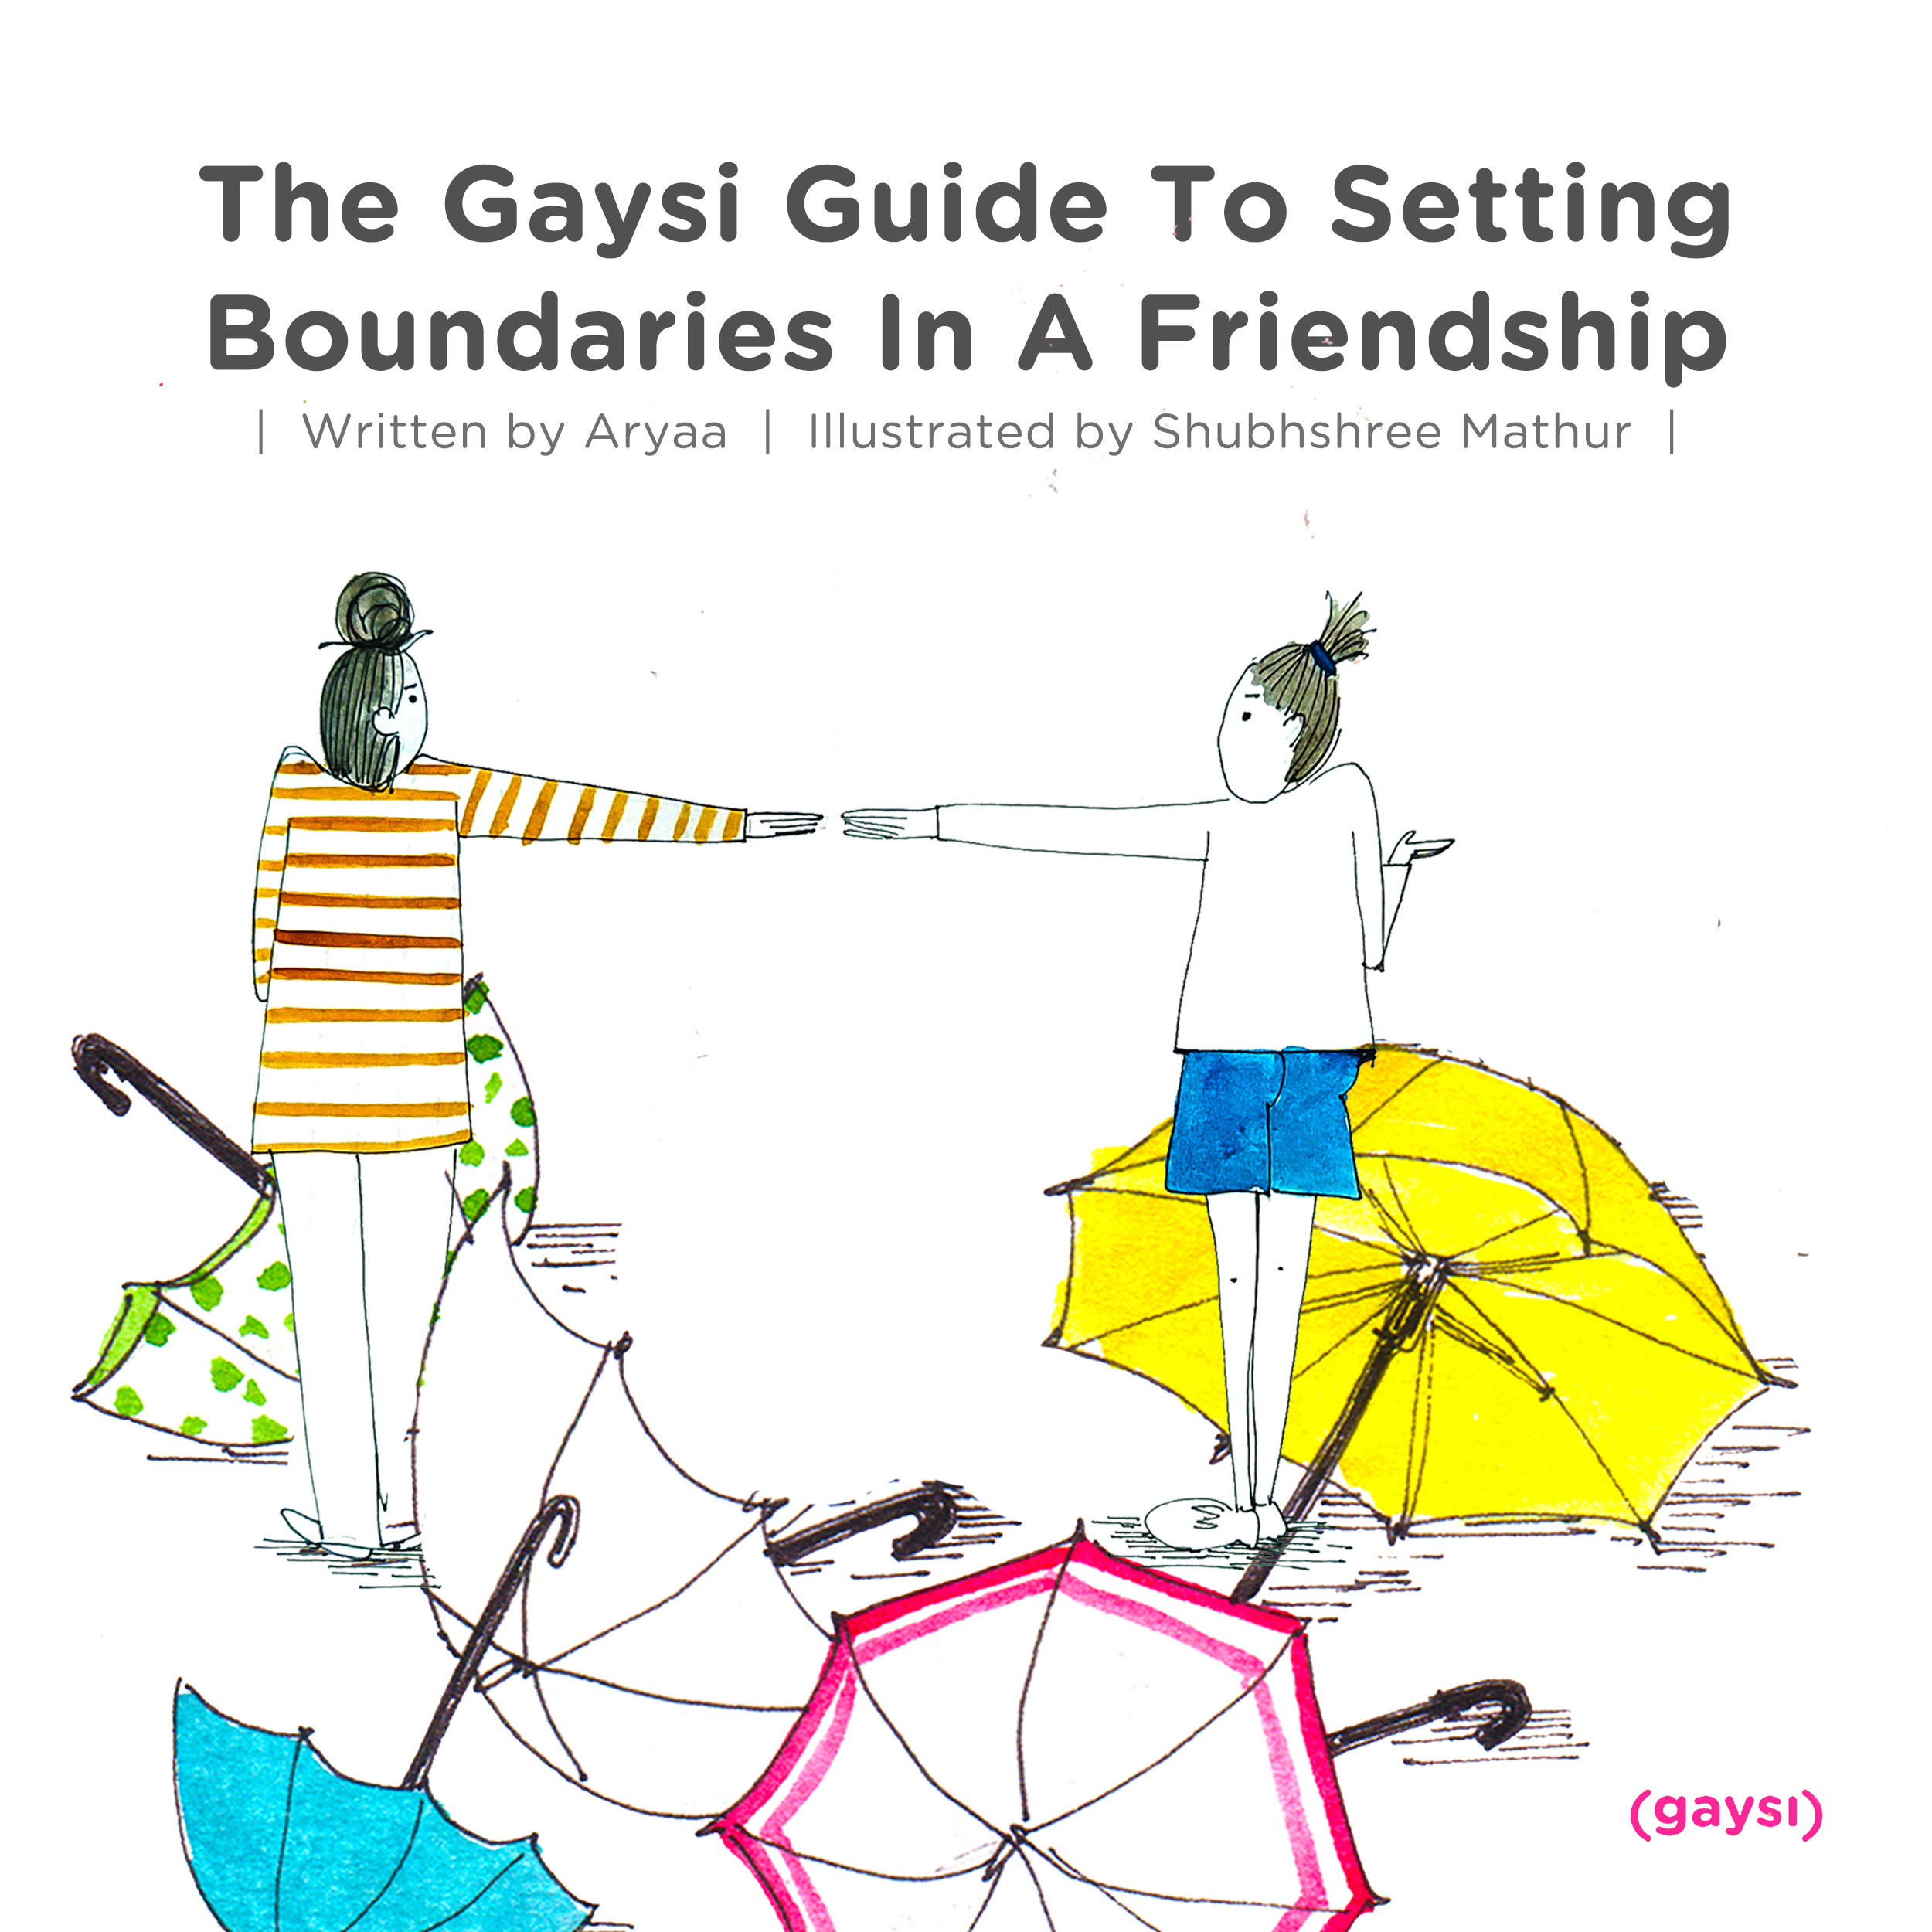 The Gaysi Guide To Setting Boundaries In A Friendship